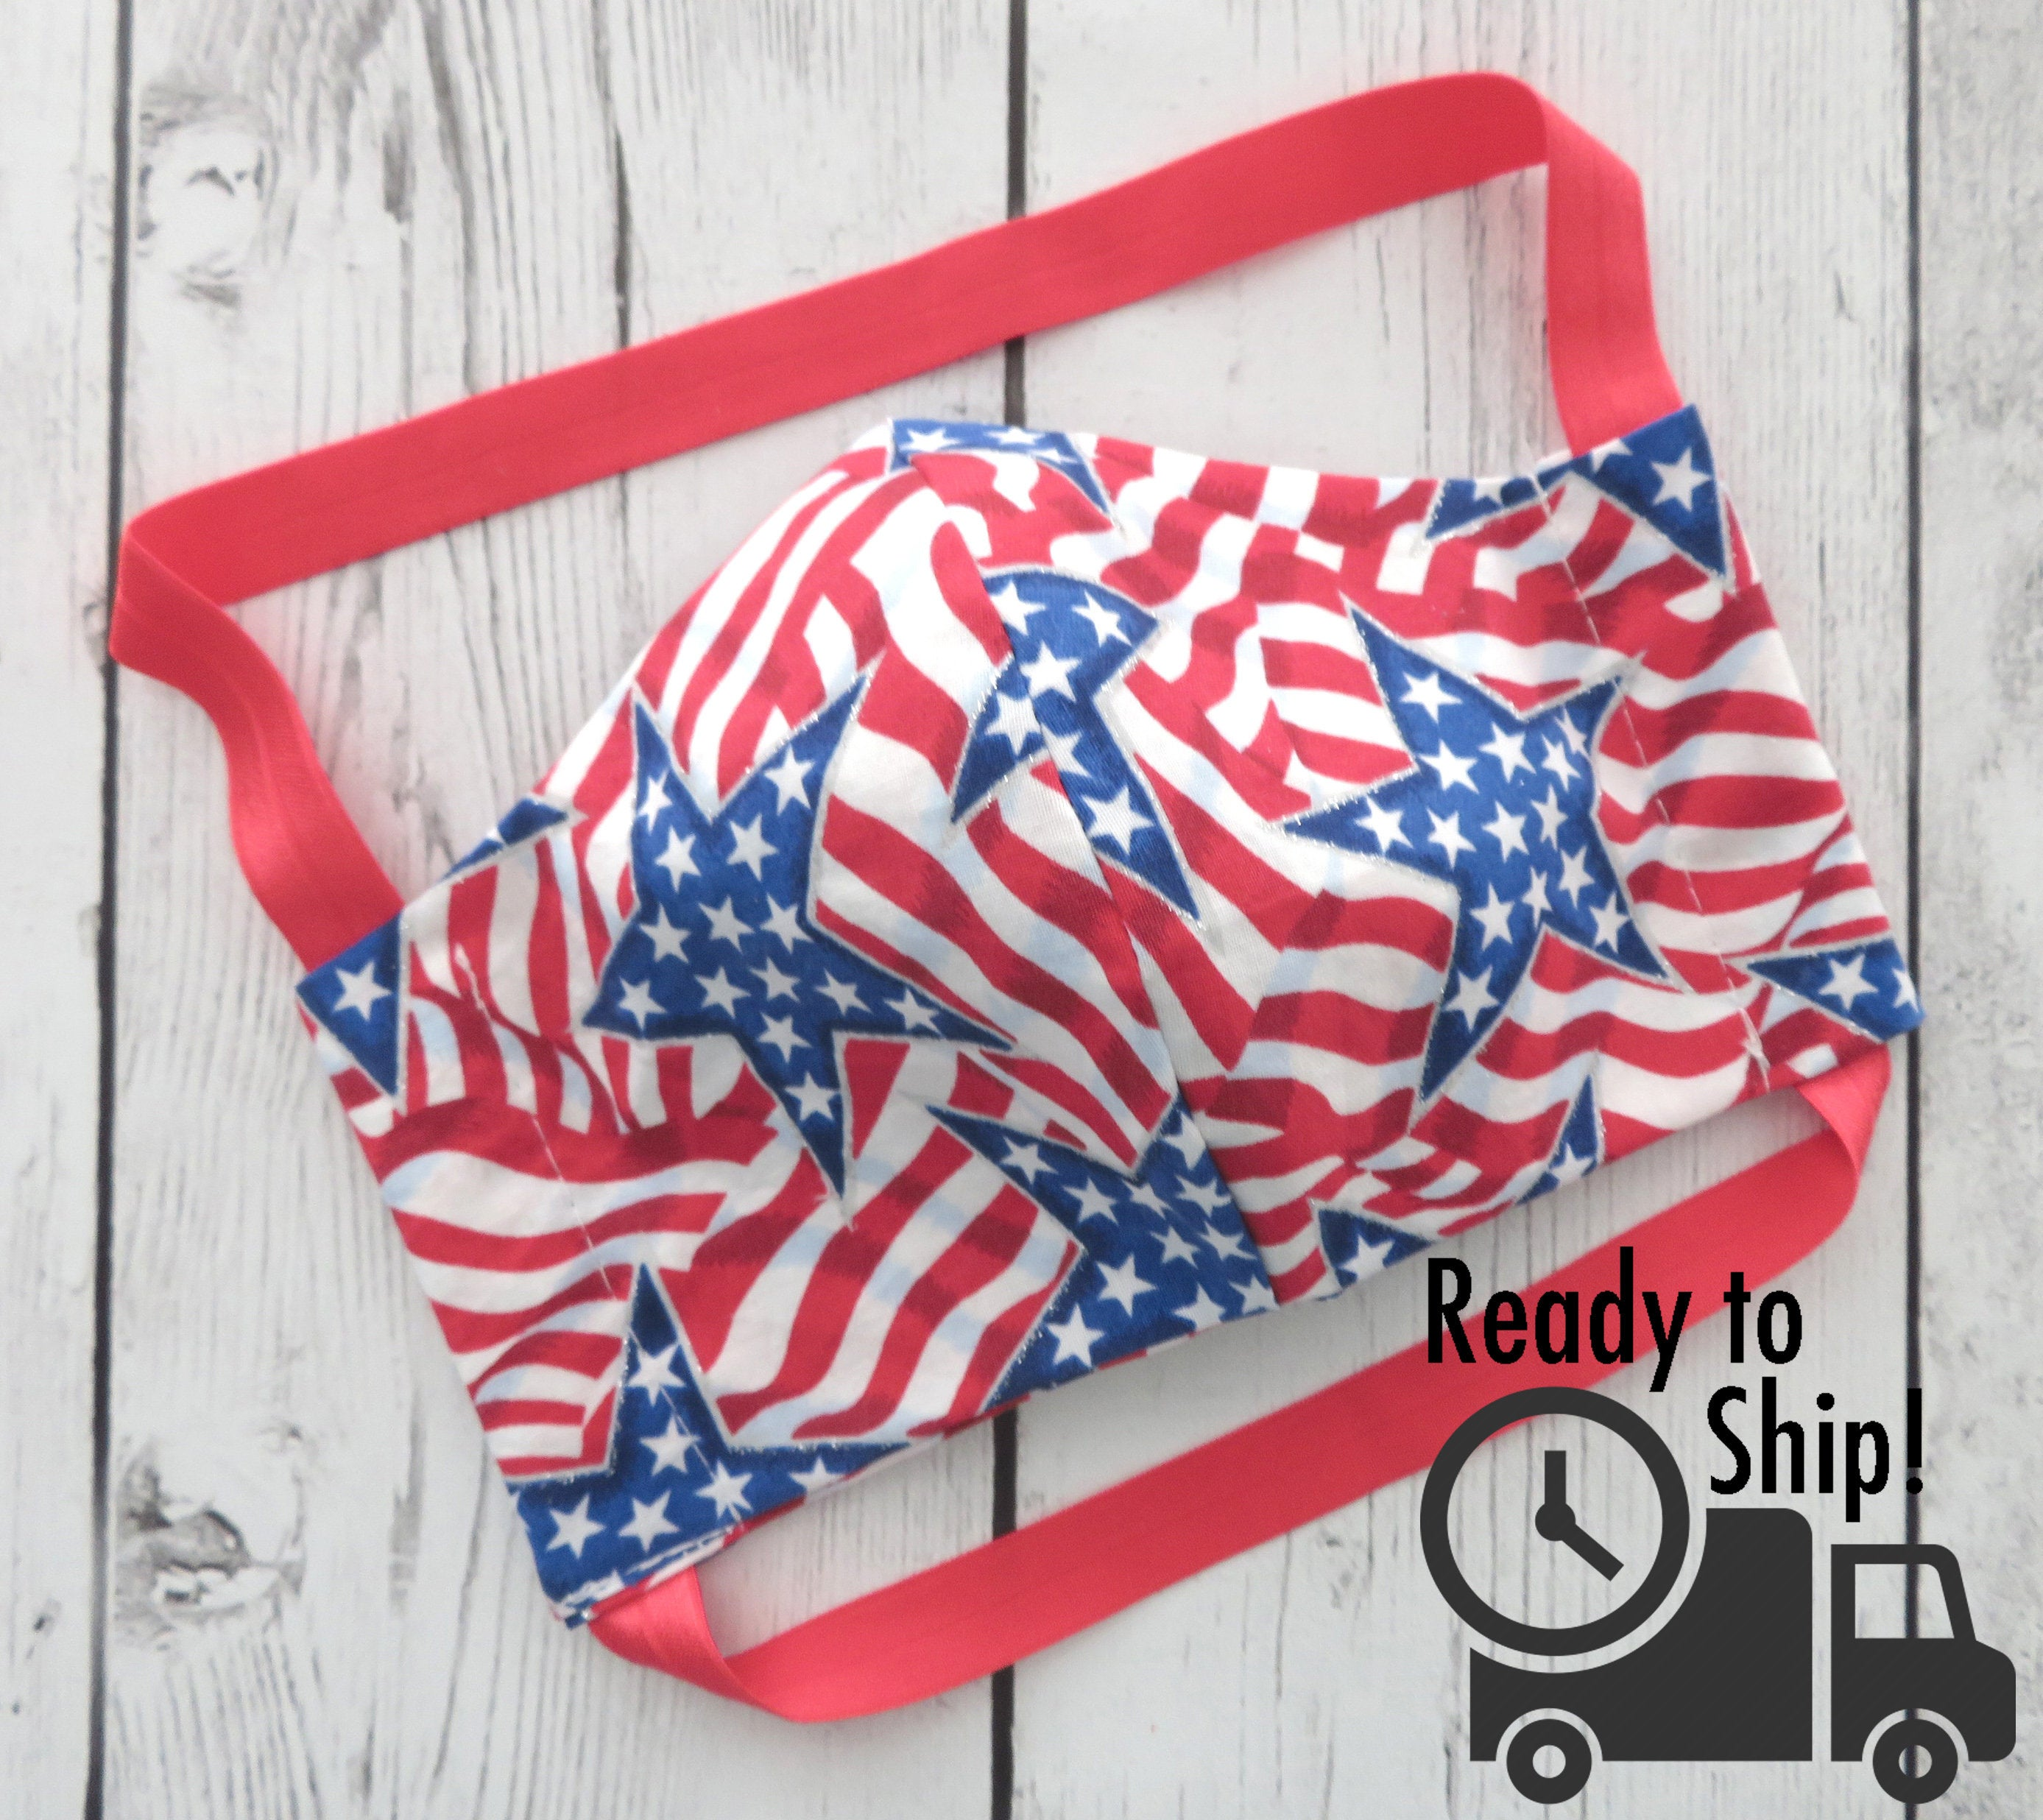 American Flag Face Mask - READY TO SHIP! handmade cotton face mask for adult, re-usable, washable, patterned face mask, patriotic face mask